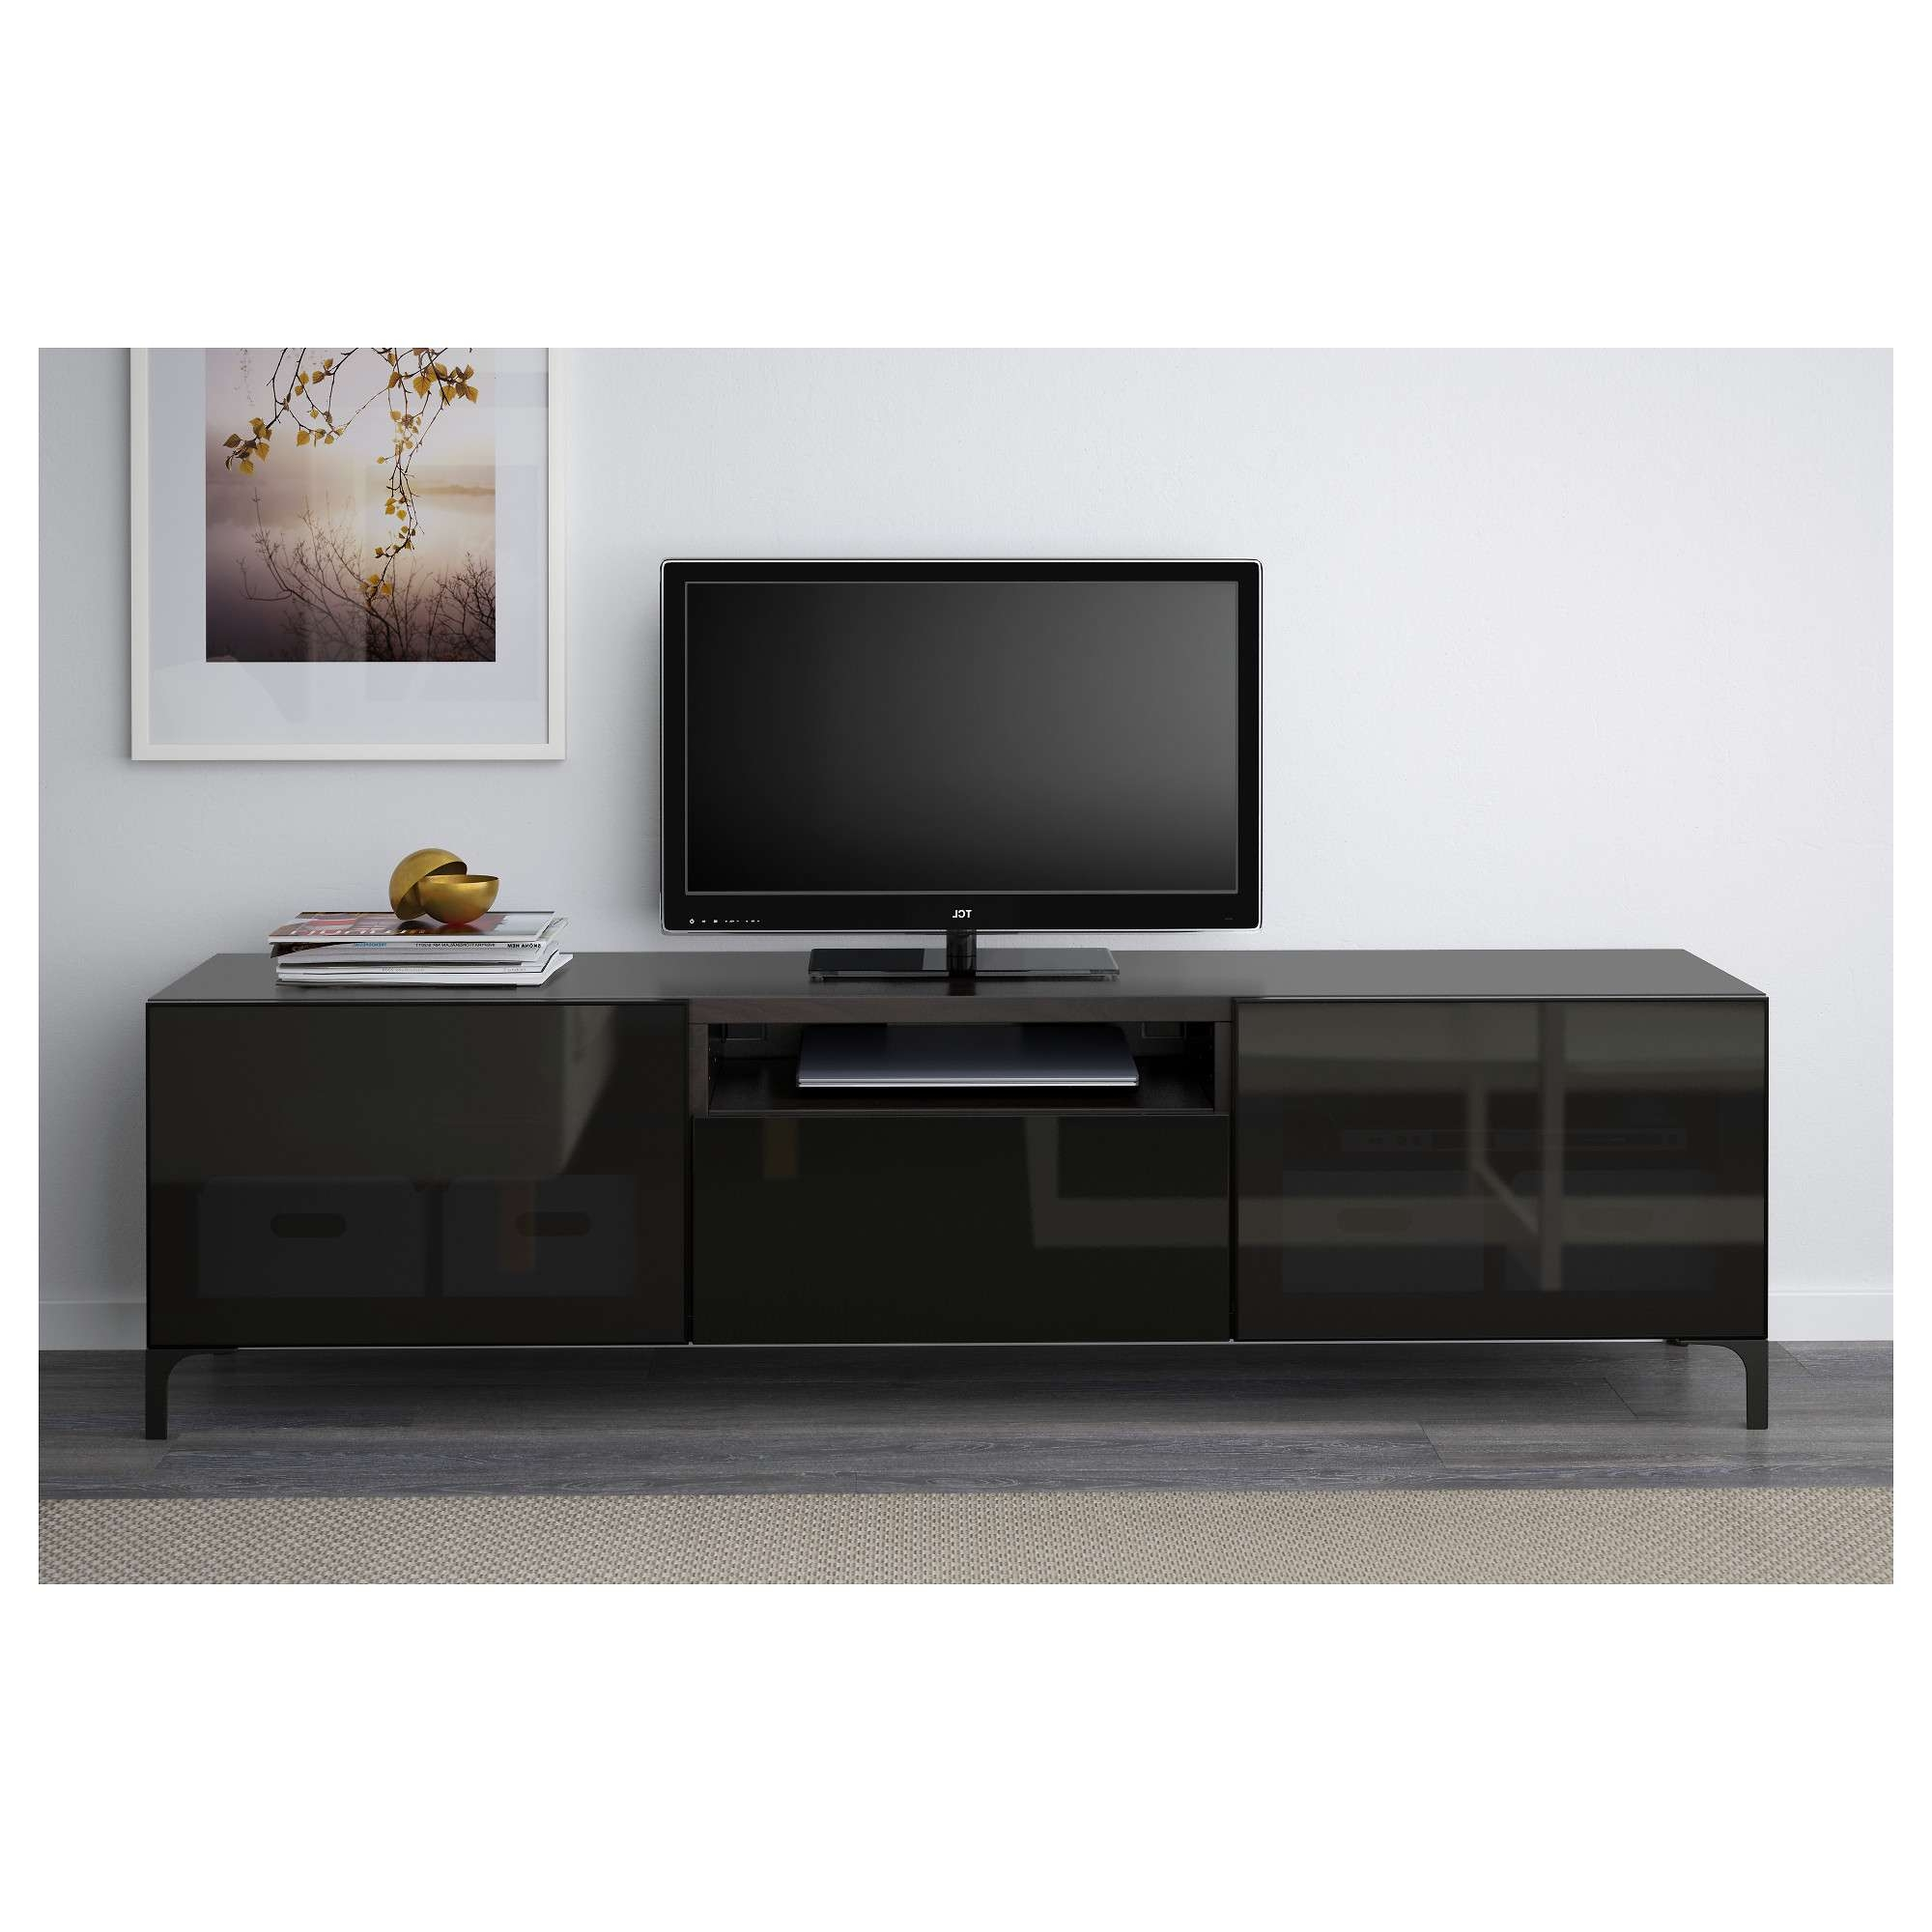 Bestå Tv Bench – Black Brown/selsviken High Gloss/black Clear Regarding Tv Cabinets Black High Gloss (View 19 of 20)